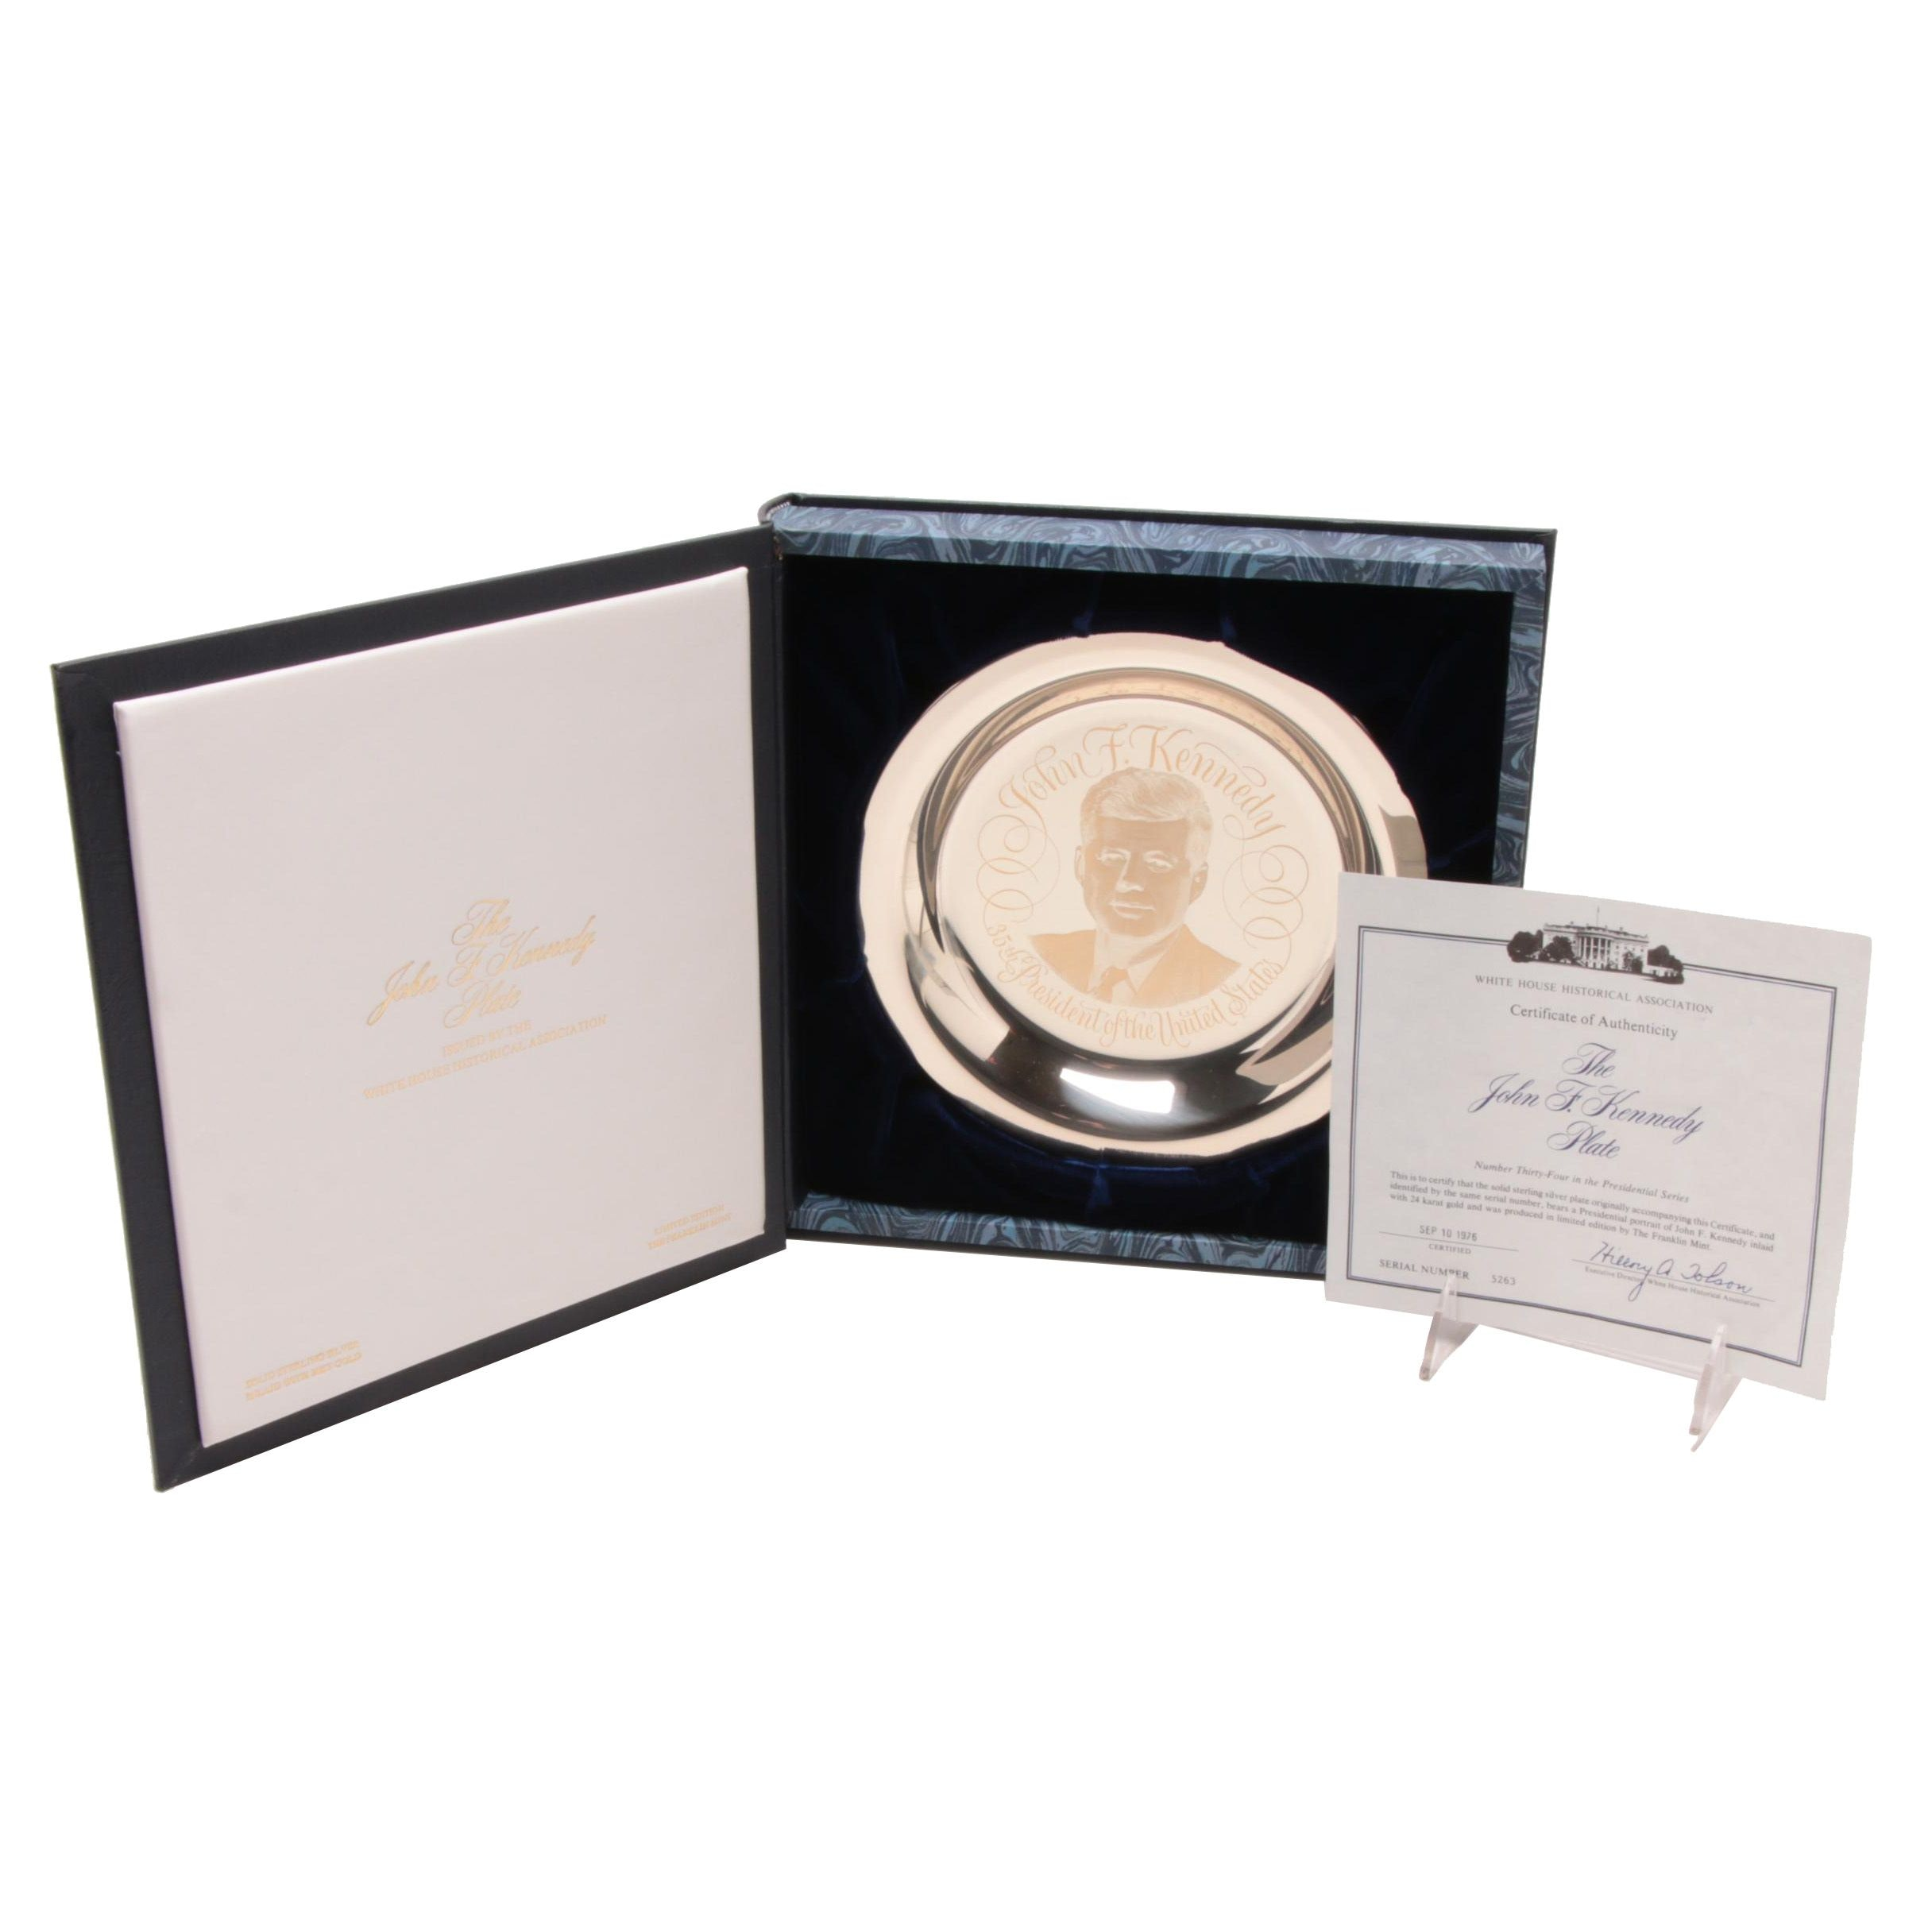 Sterling Silver and 24K Gold John F. Kennedy Limited Edition Collector's Plate